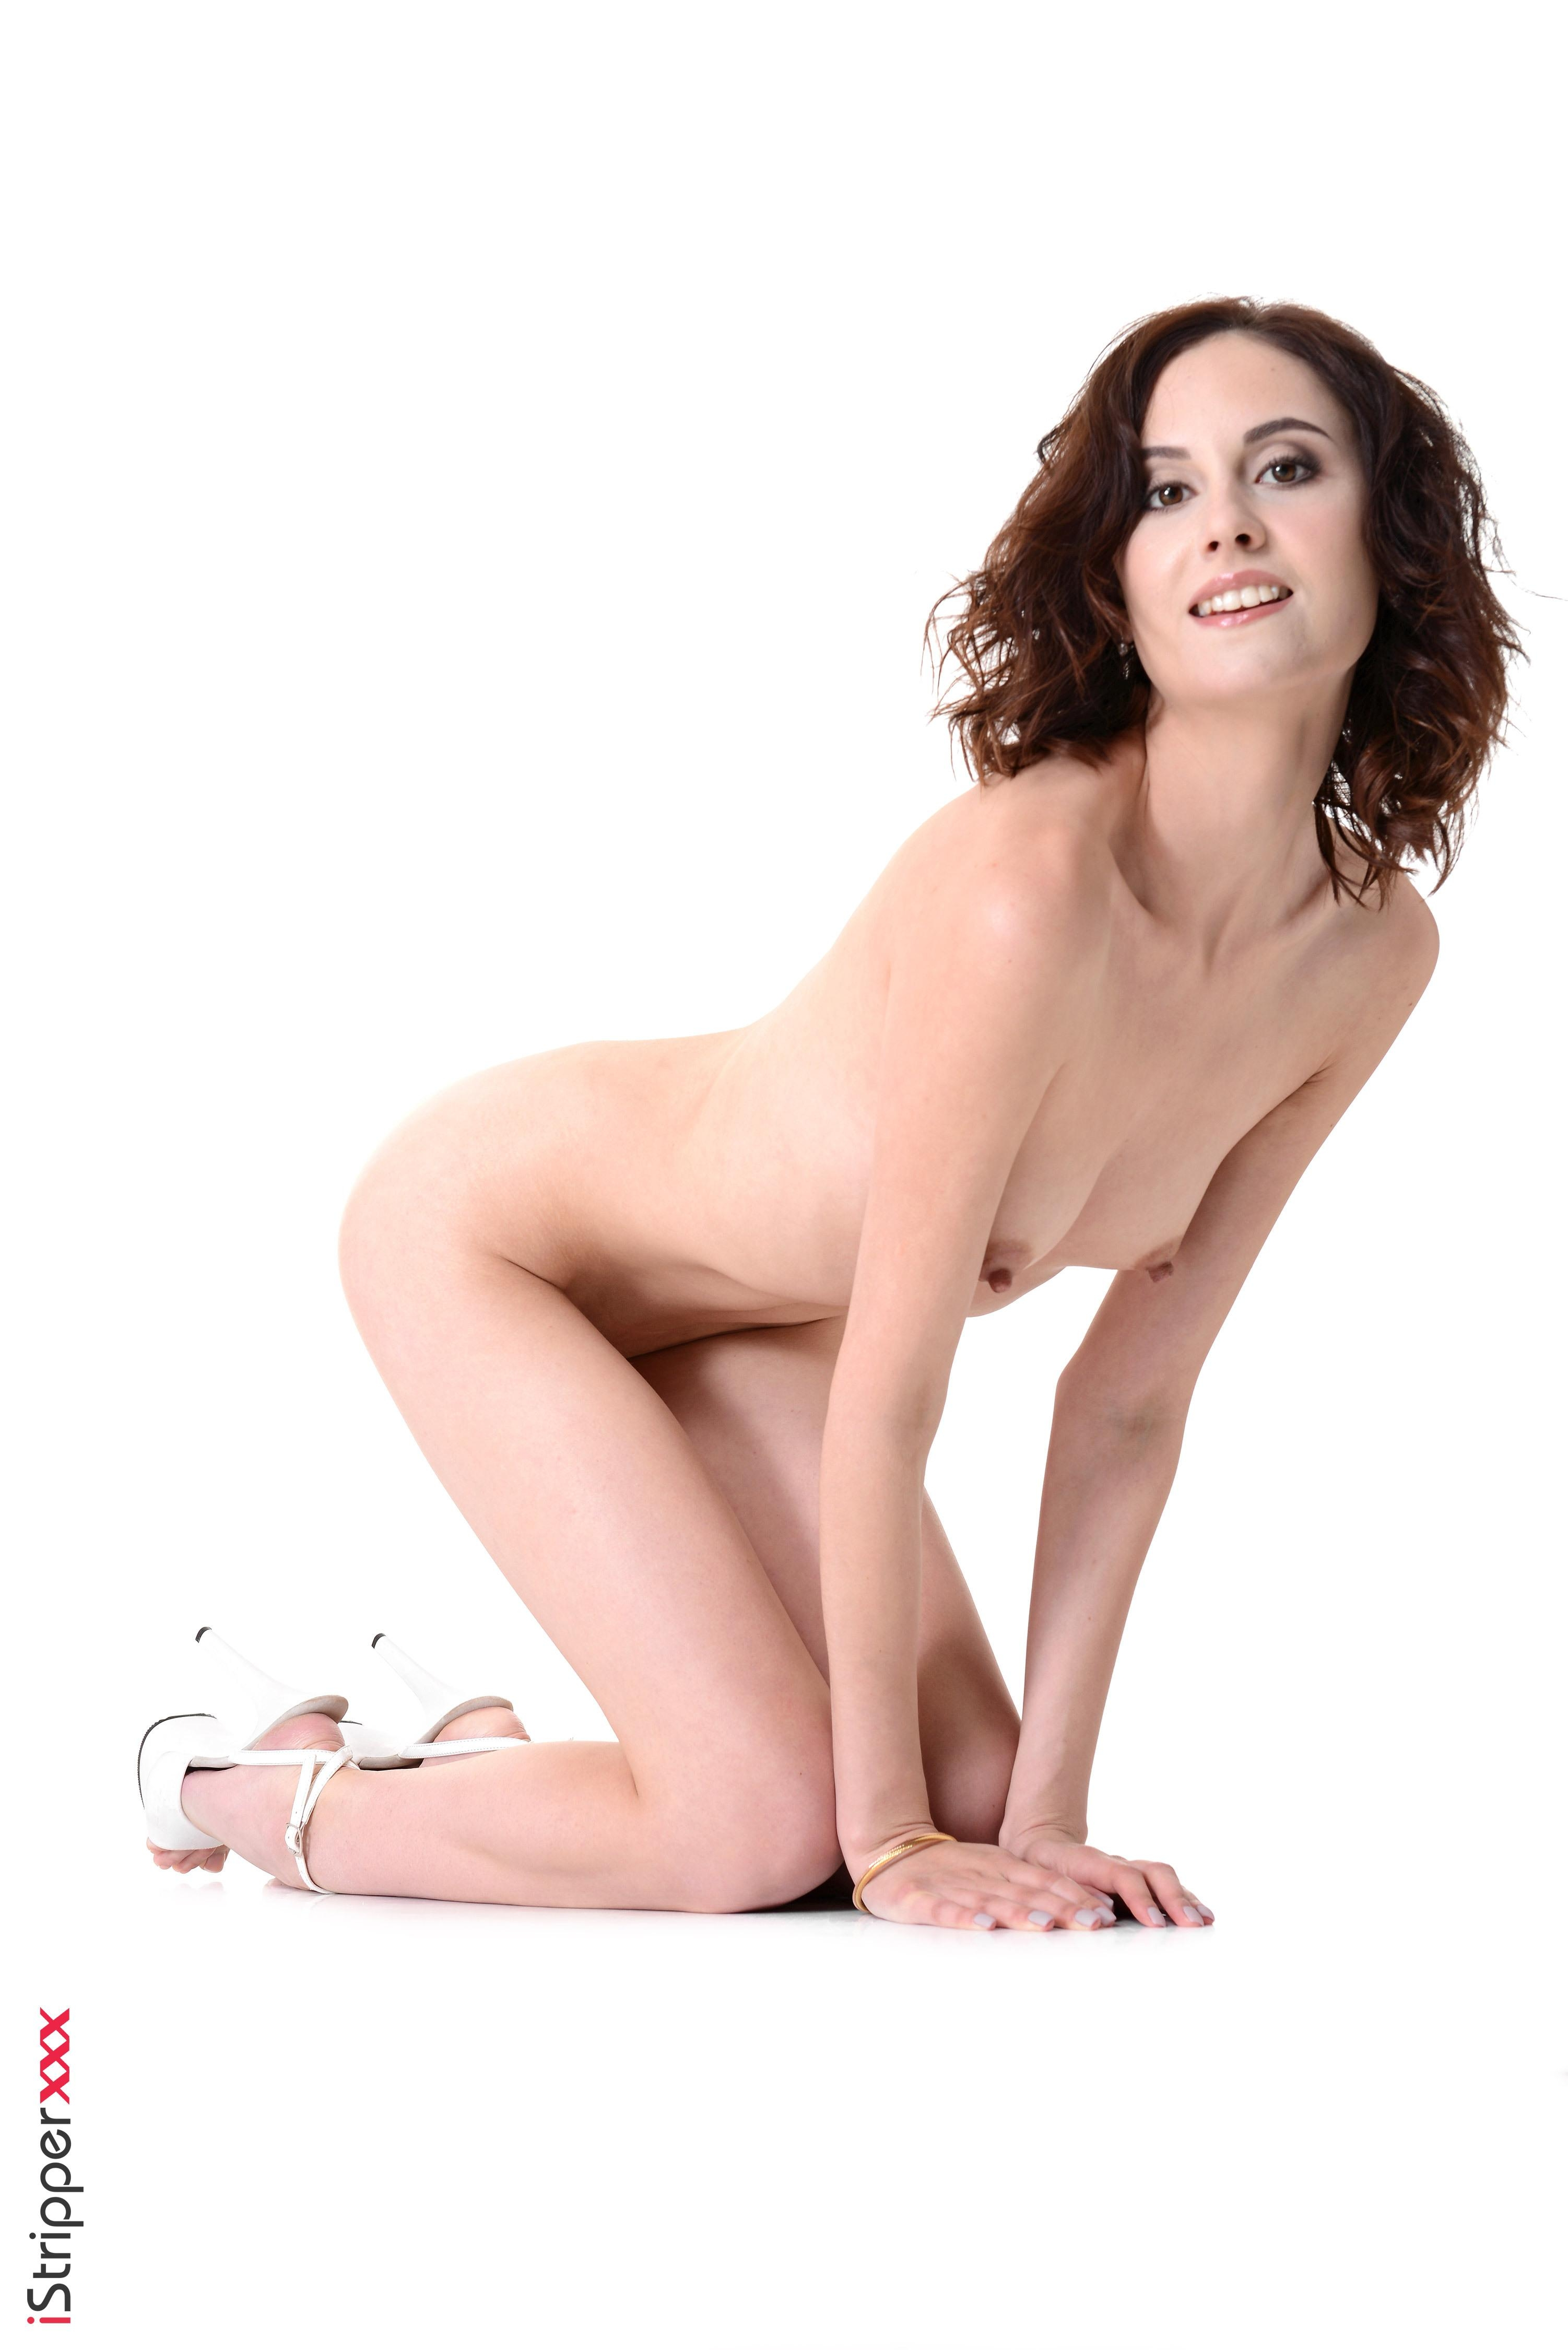 Solo model Sade Mare inserts a big dildo into her shaved pussy after stripping naked